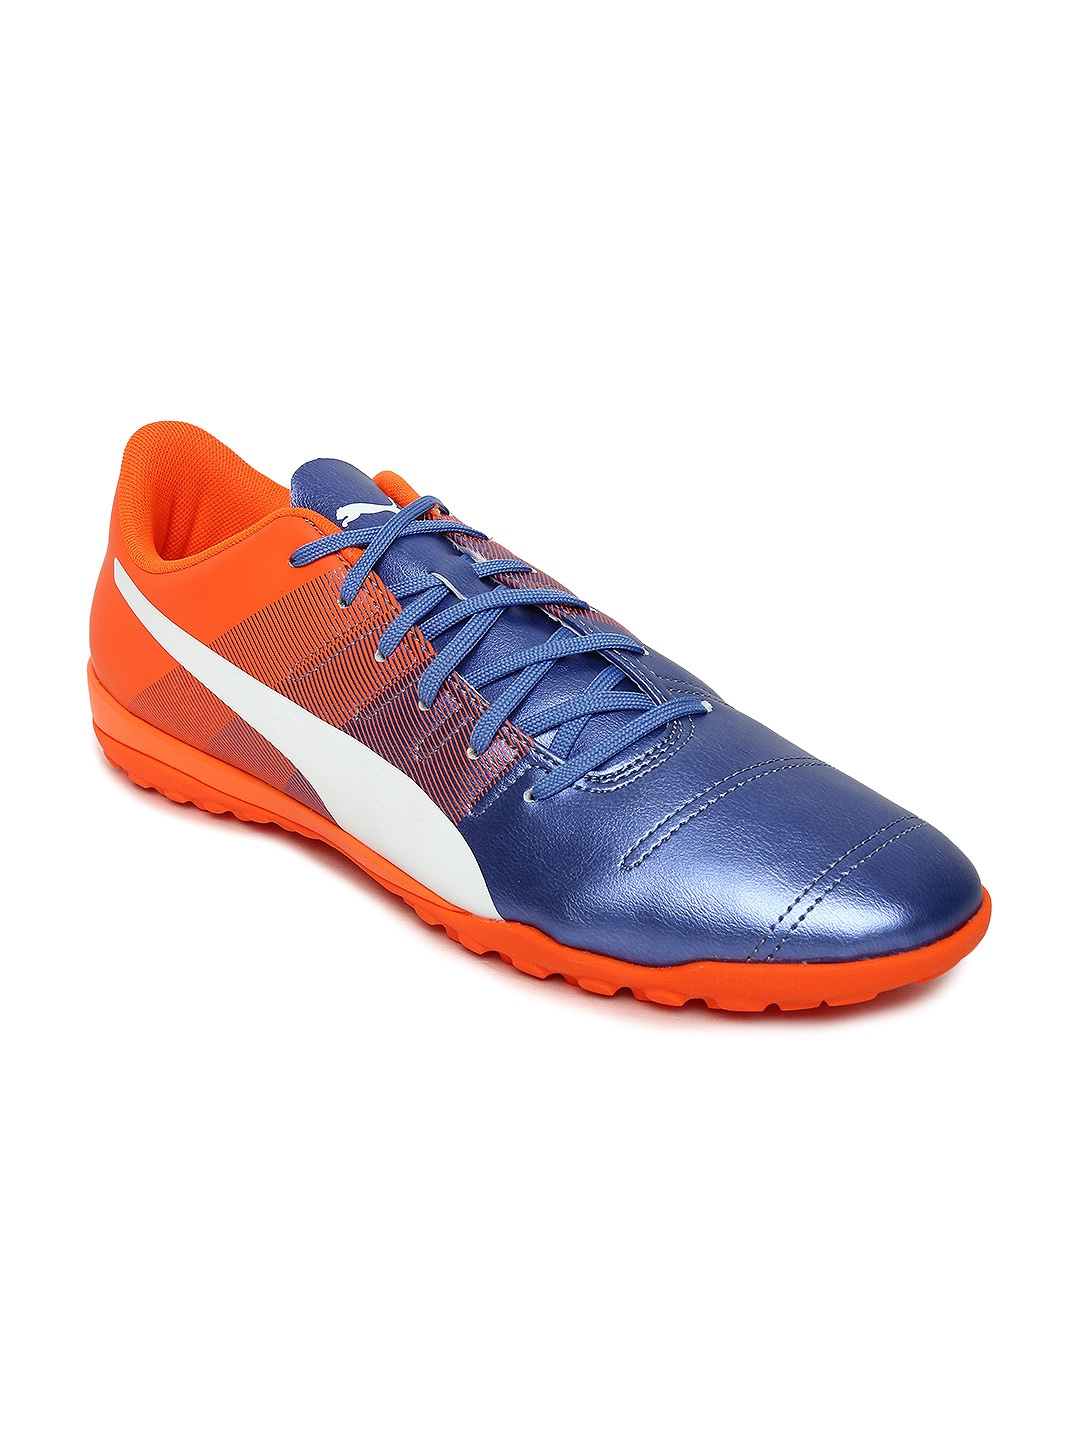 6e16860b43d943 Puma Men Blue Tops Sports Shoes Casual - Buy Puma Men Blue Tops Sports Shoes  Casual online in India